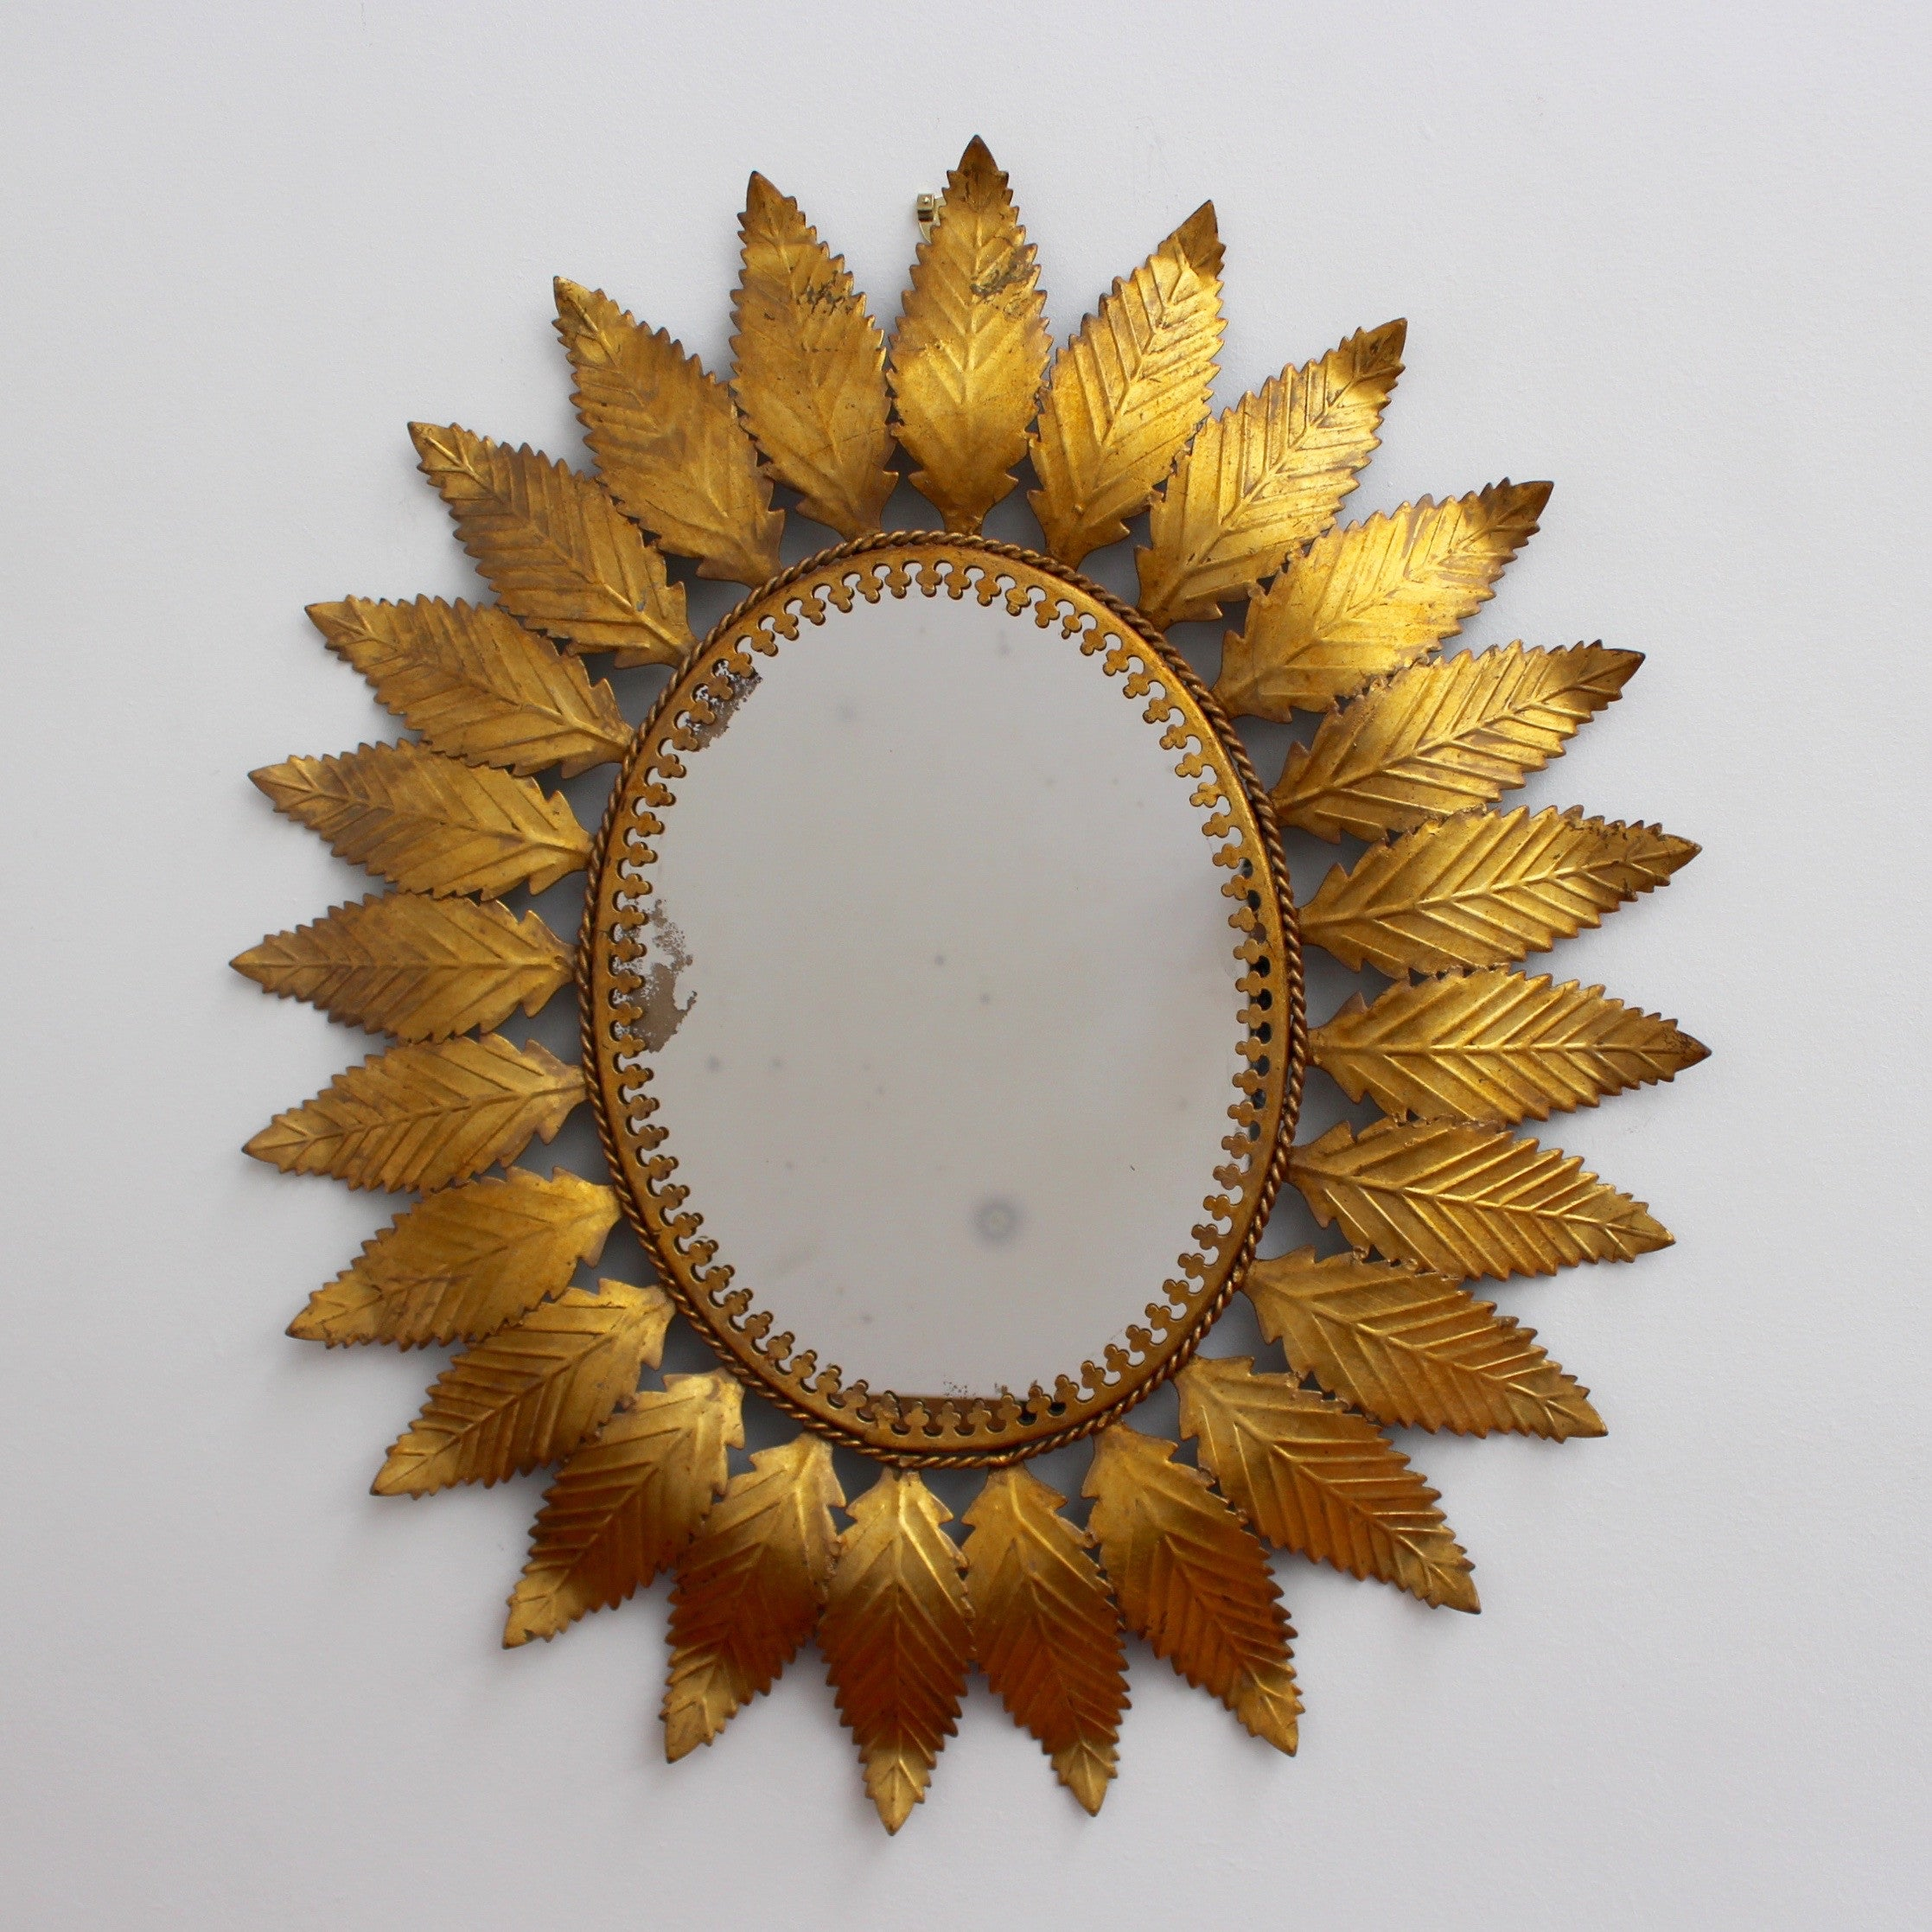 Spanish Gilt Metal Sunburst Mirror (c. 1950s)